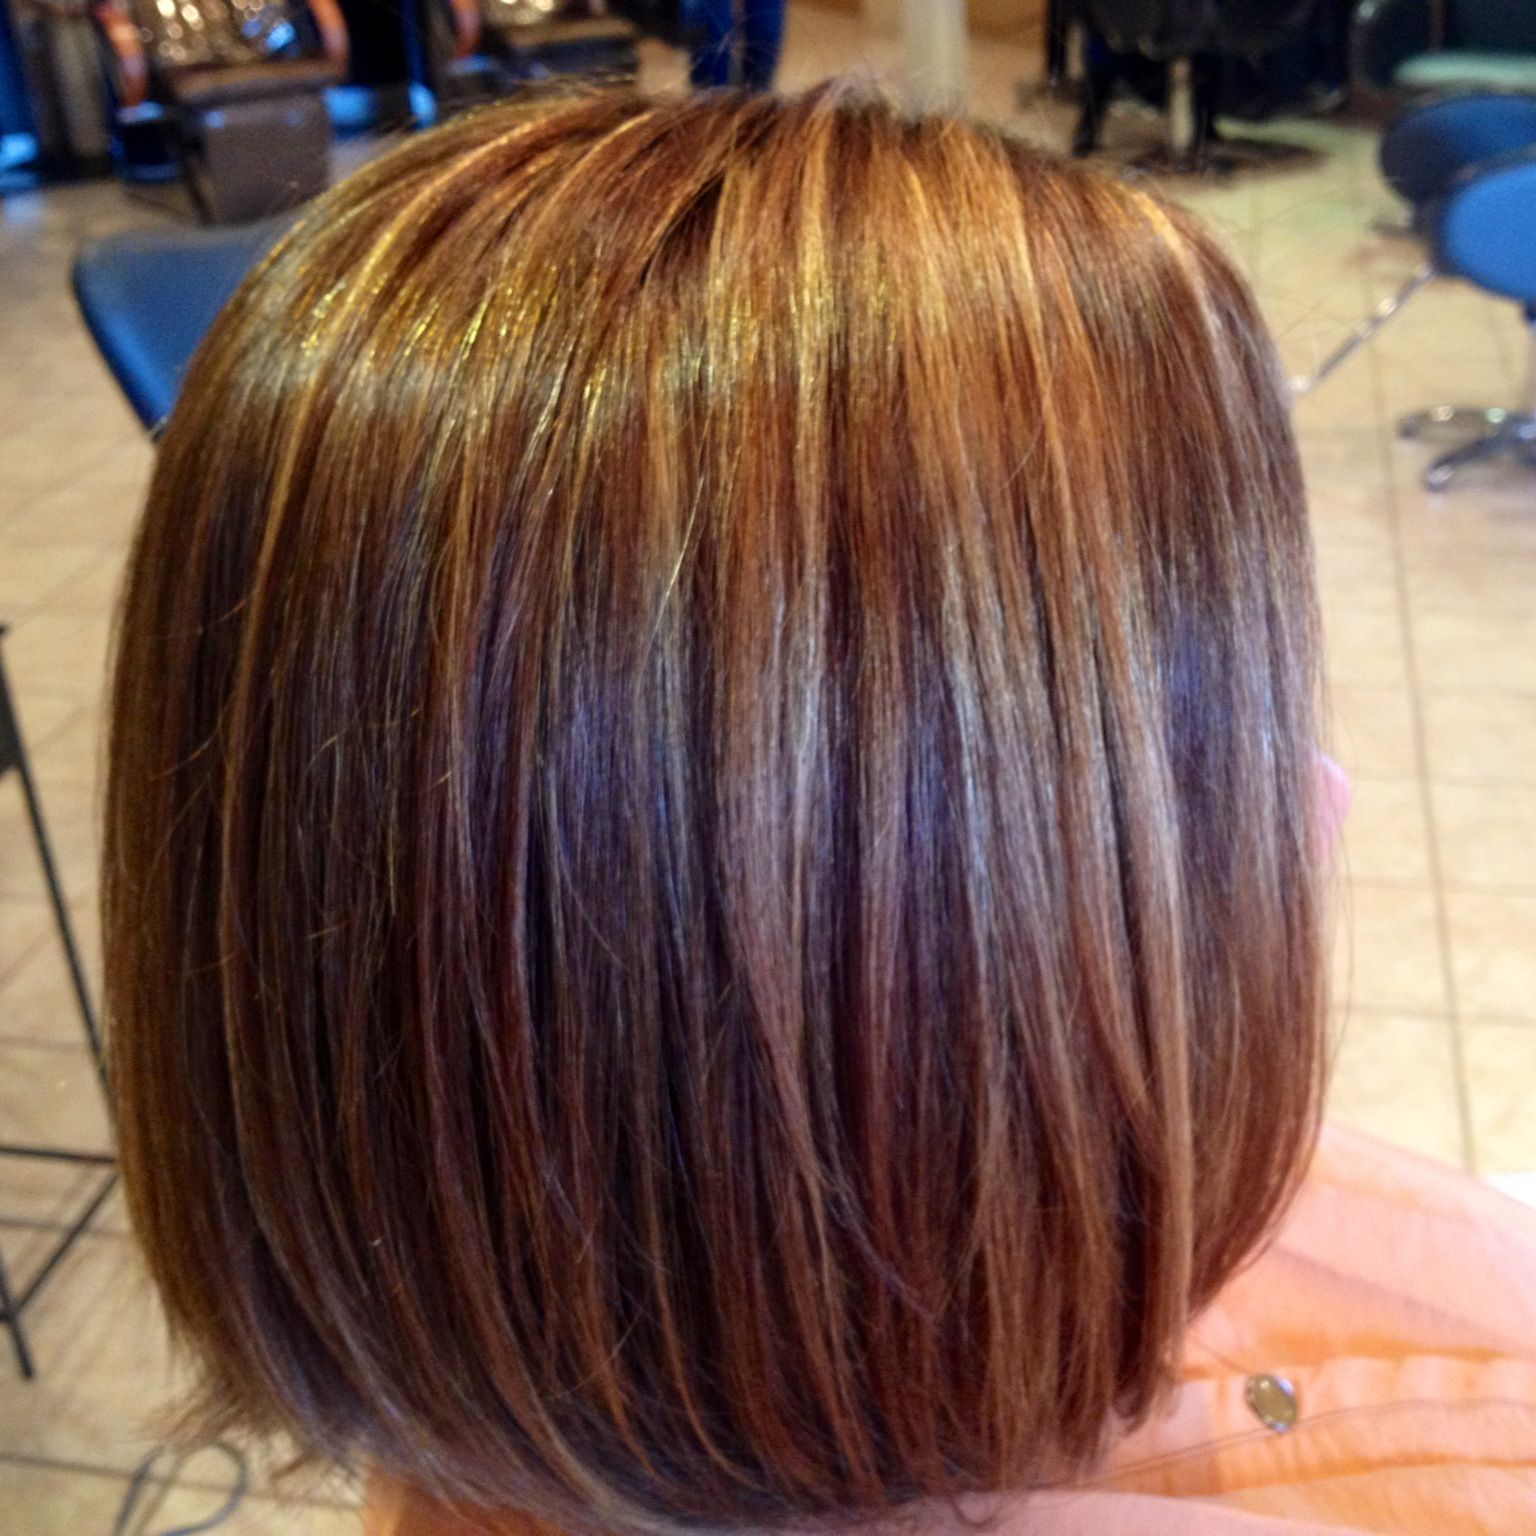 Natural red and blonde highlights | Beauty | Pinterest